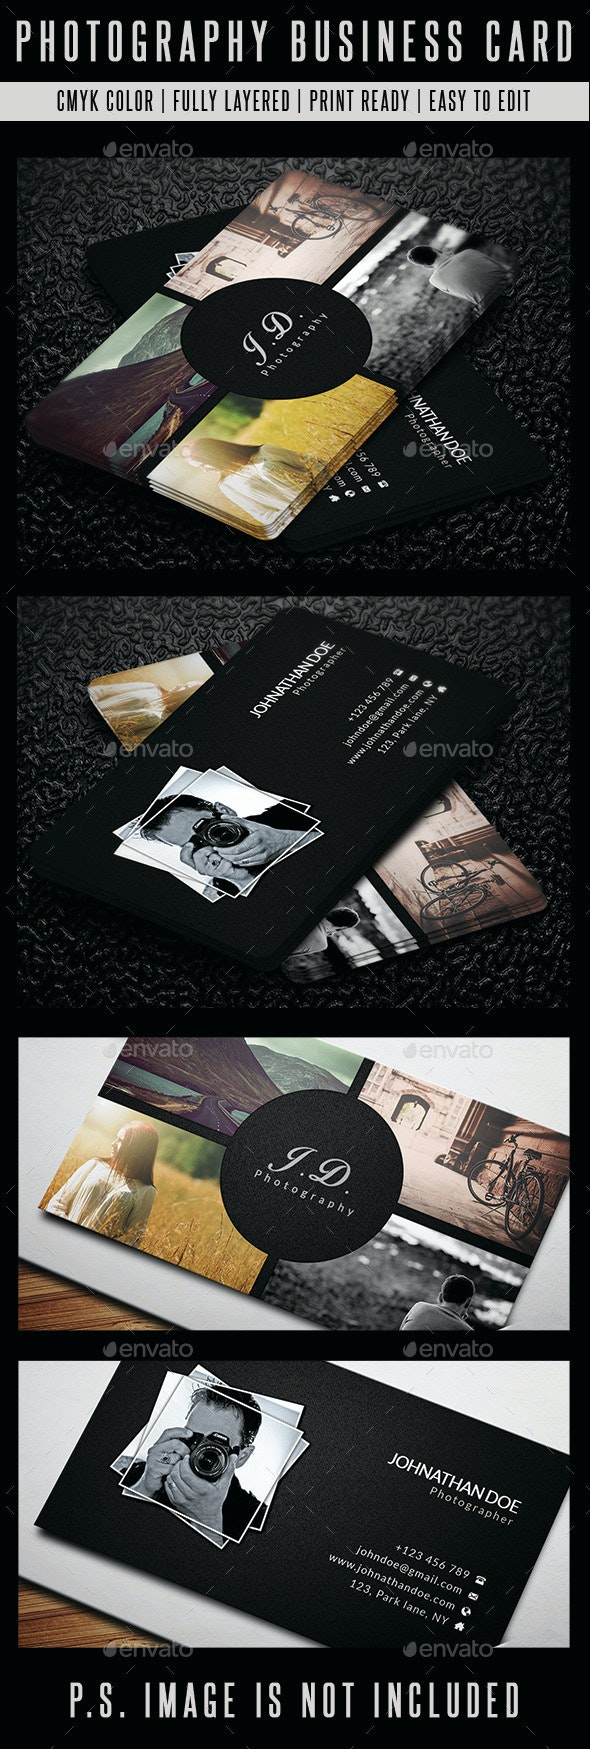 Photography Business Card - Business Cards Print Templates